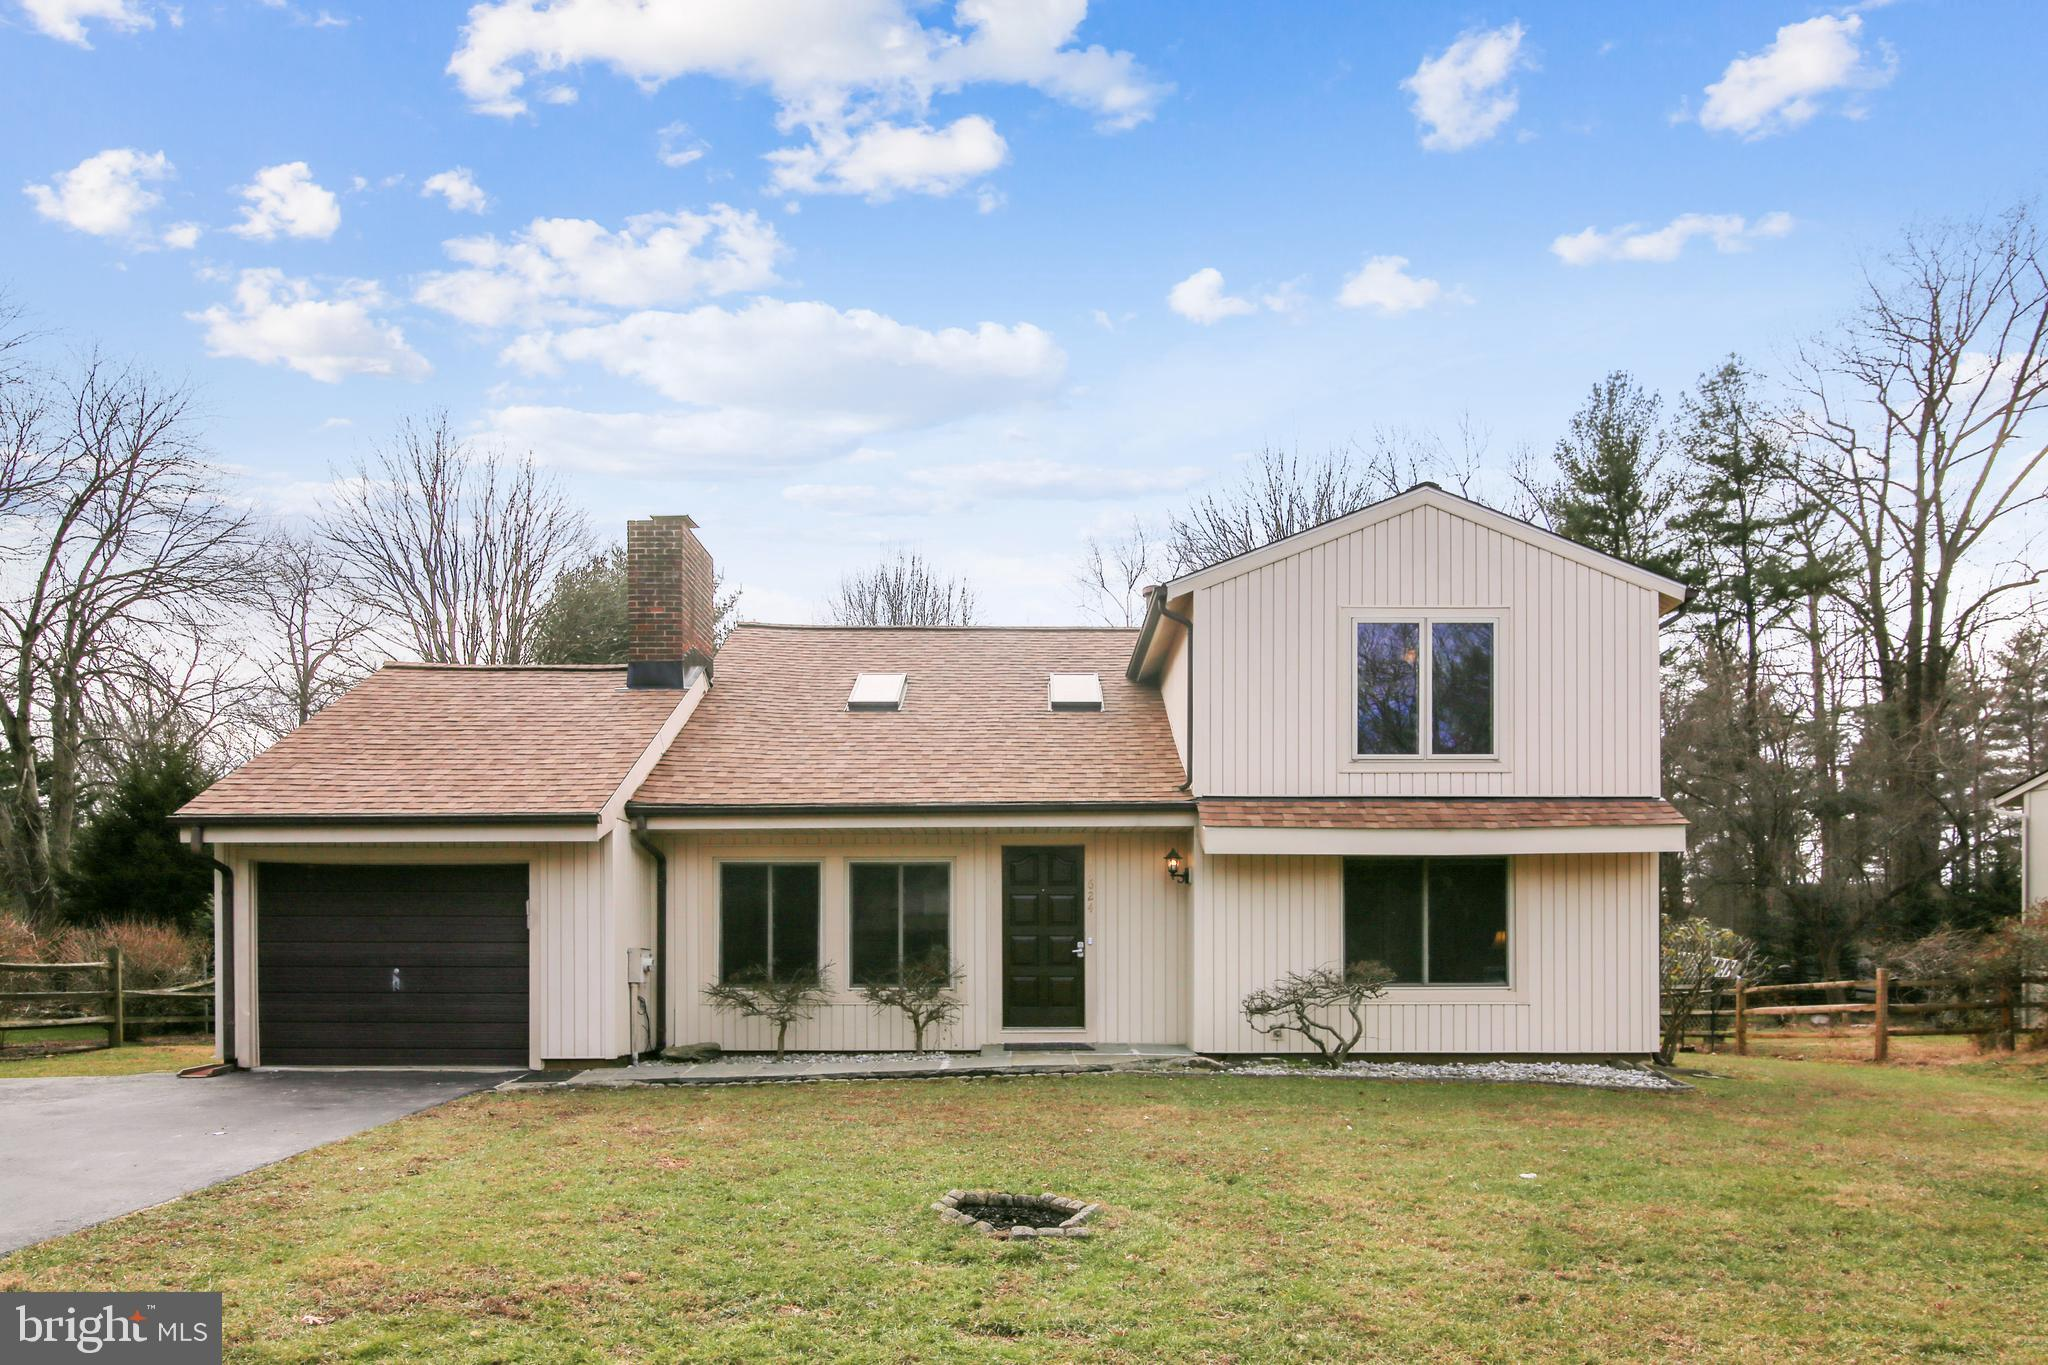 OPEN HOUSE 1-4PM ( 01/24)  A truly amazing renovated 2,293 sq. ft. single family home  w/ Garage  Bo